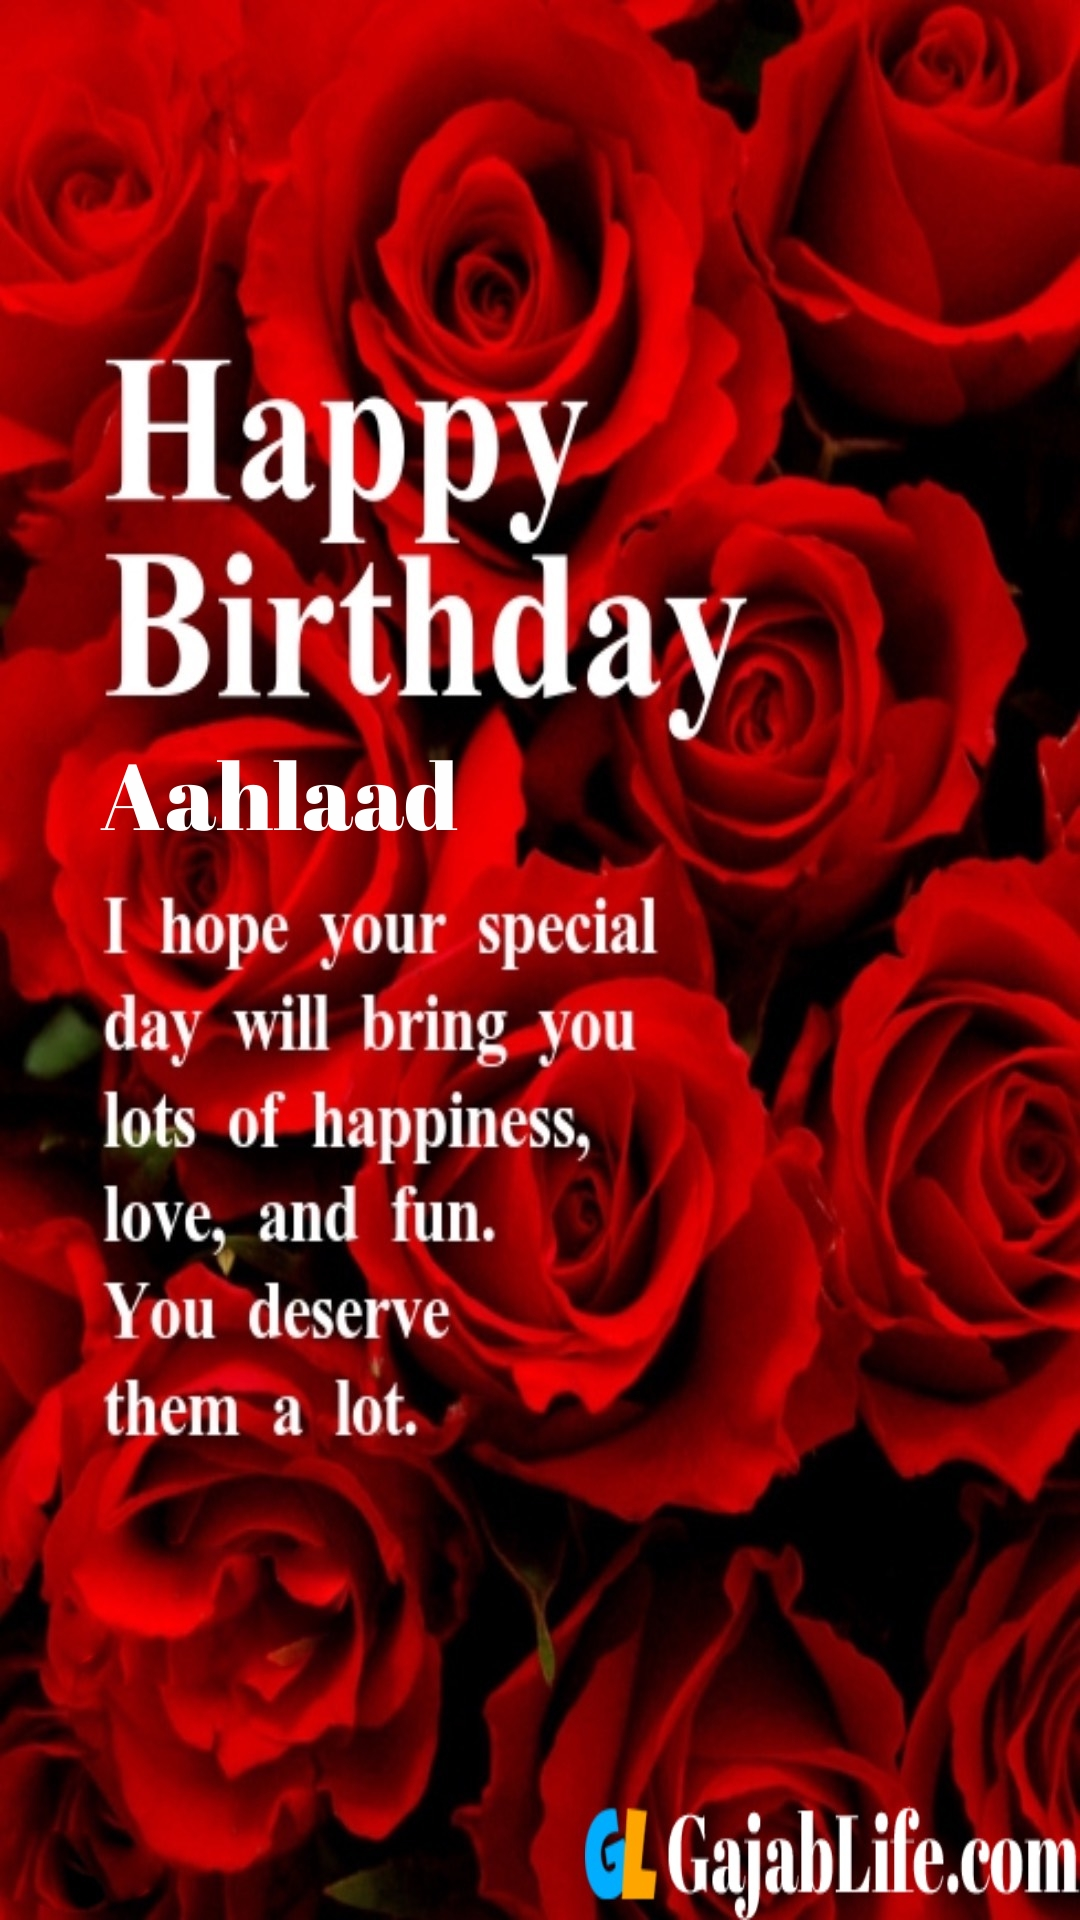 Aahlaad birthday greeting card with rose & love